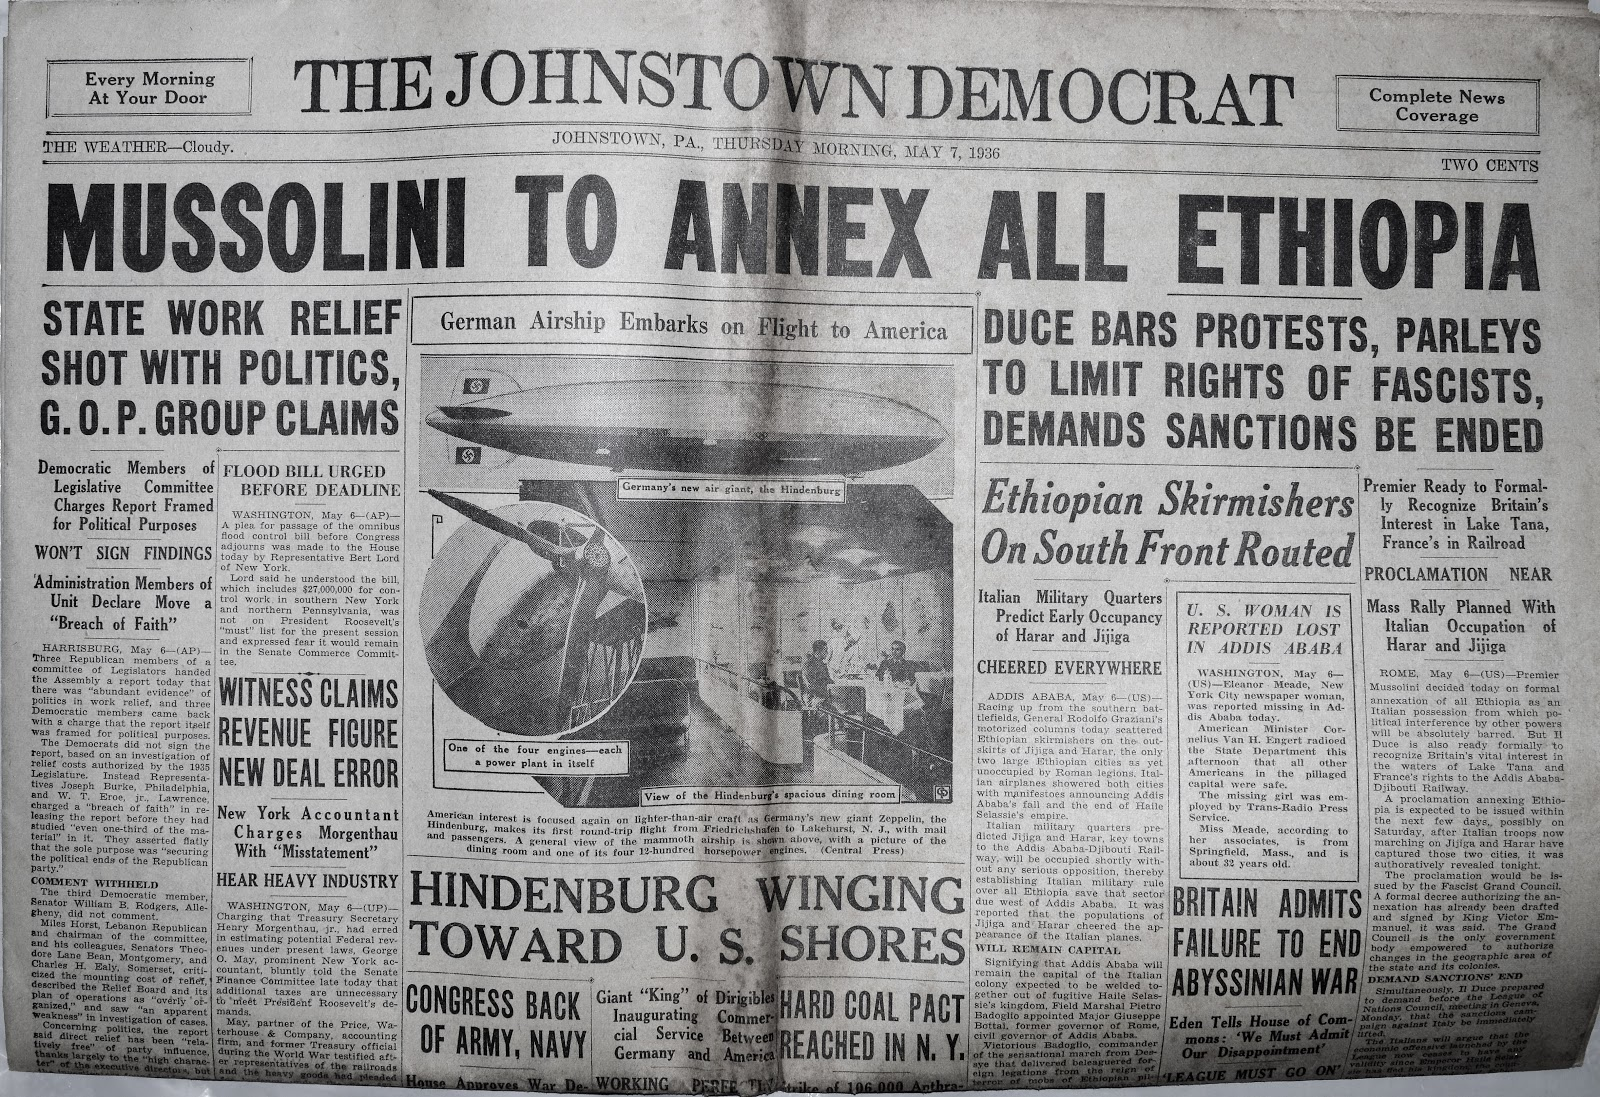 Vintage Johnstown: Last One - 7 May 1936 - The Johnstown